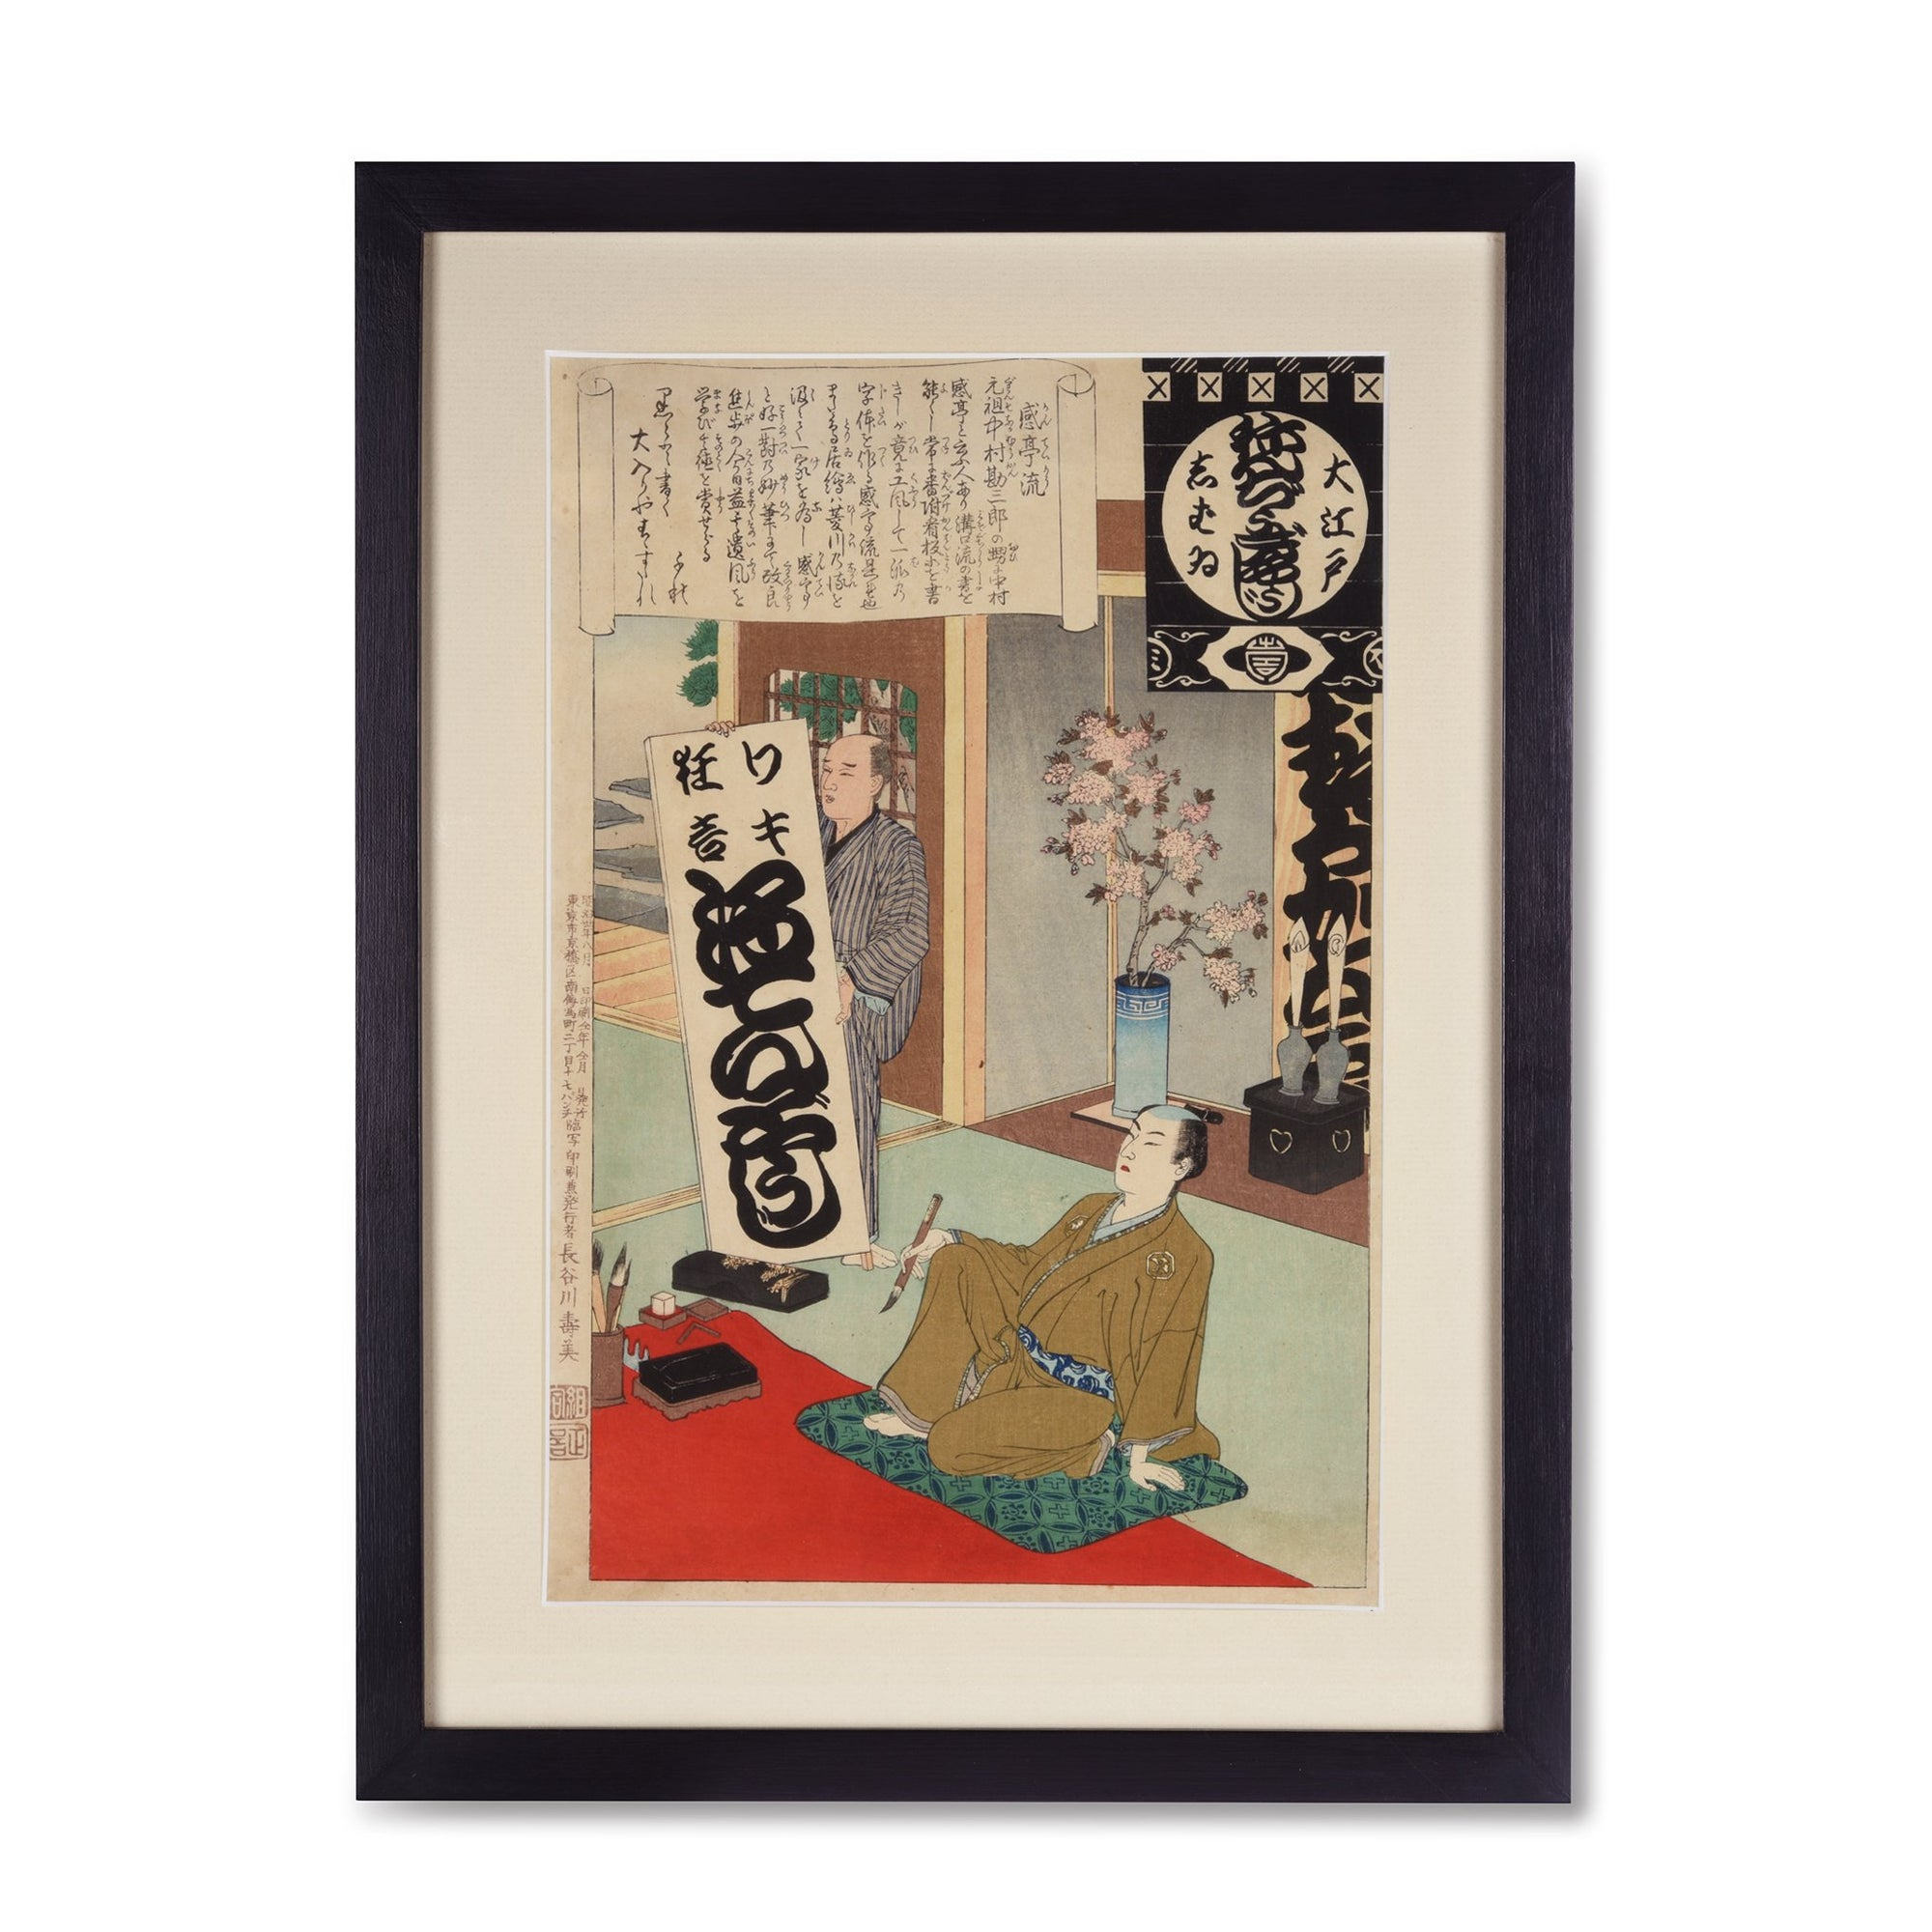 Framed Japanese Woodblock Print by Adachi Ginko - Late 19thC | Indigo Oriental Antiques